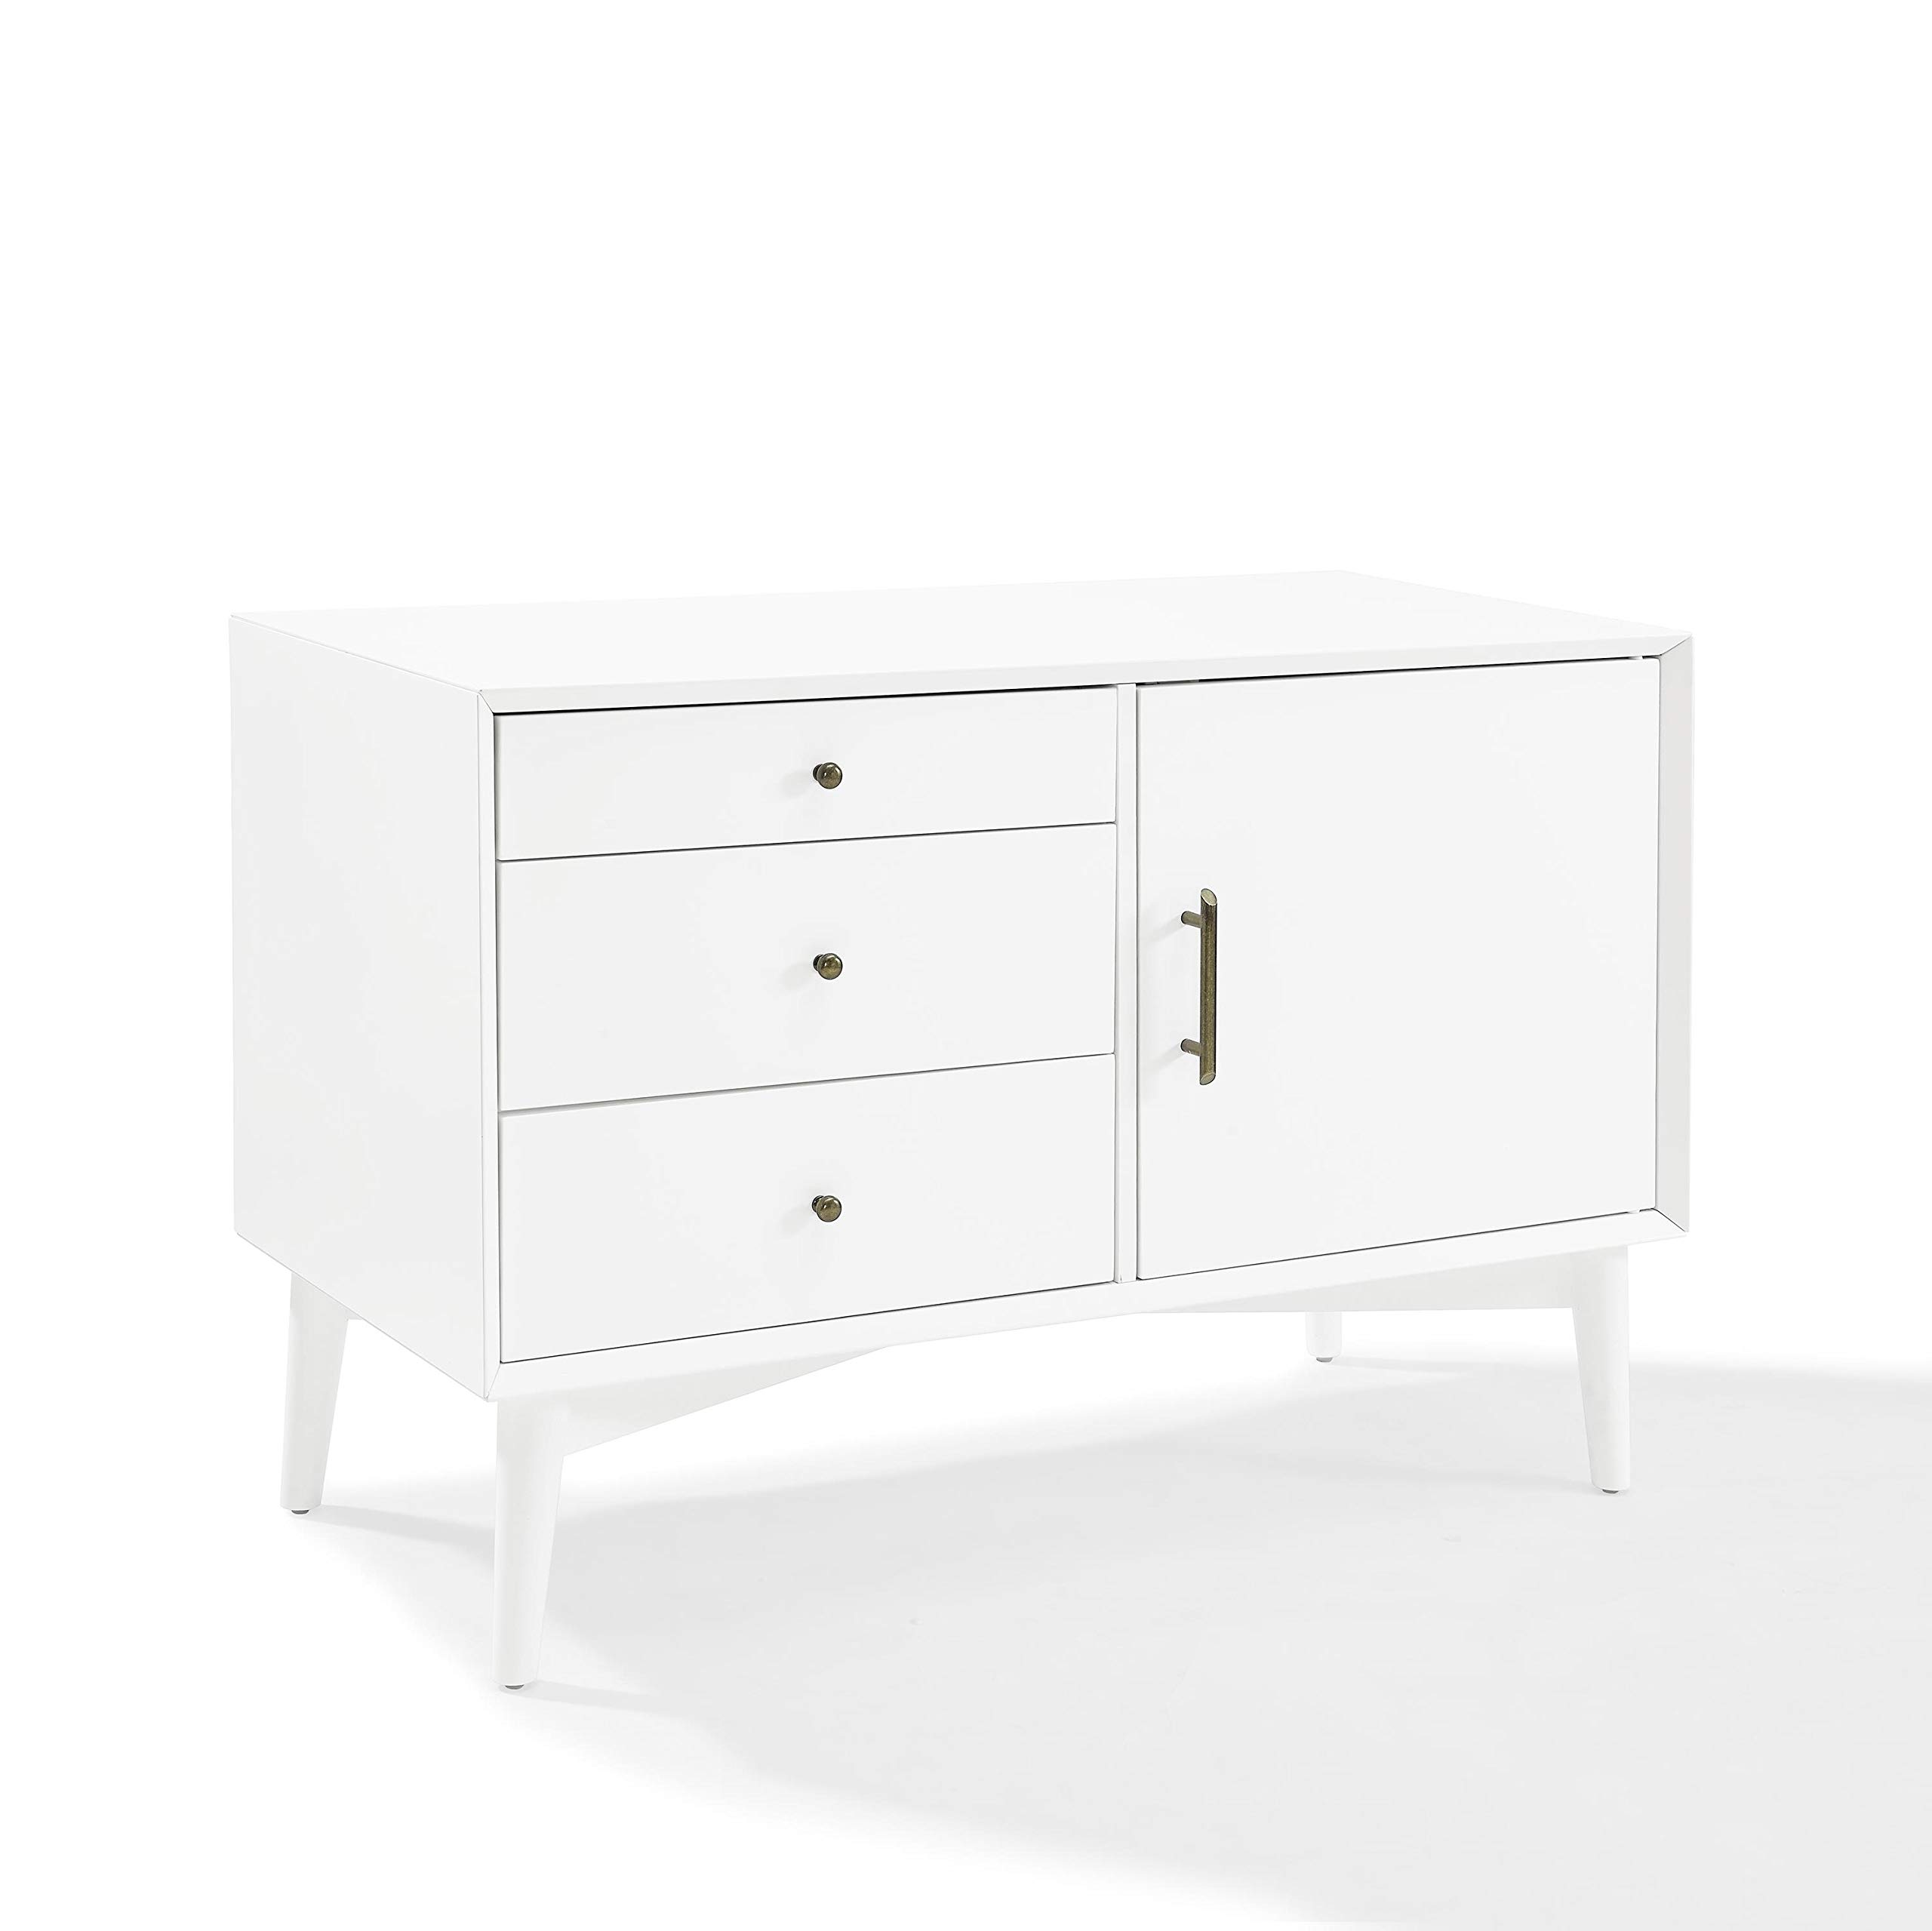 Crosley Furniture Landon Mid-Century Media Console - White by Crosley Furniture